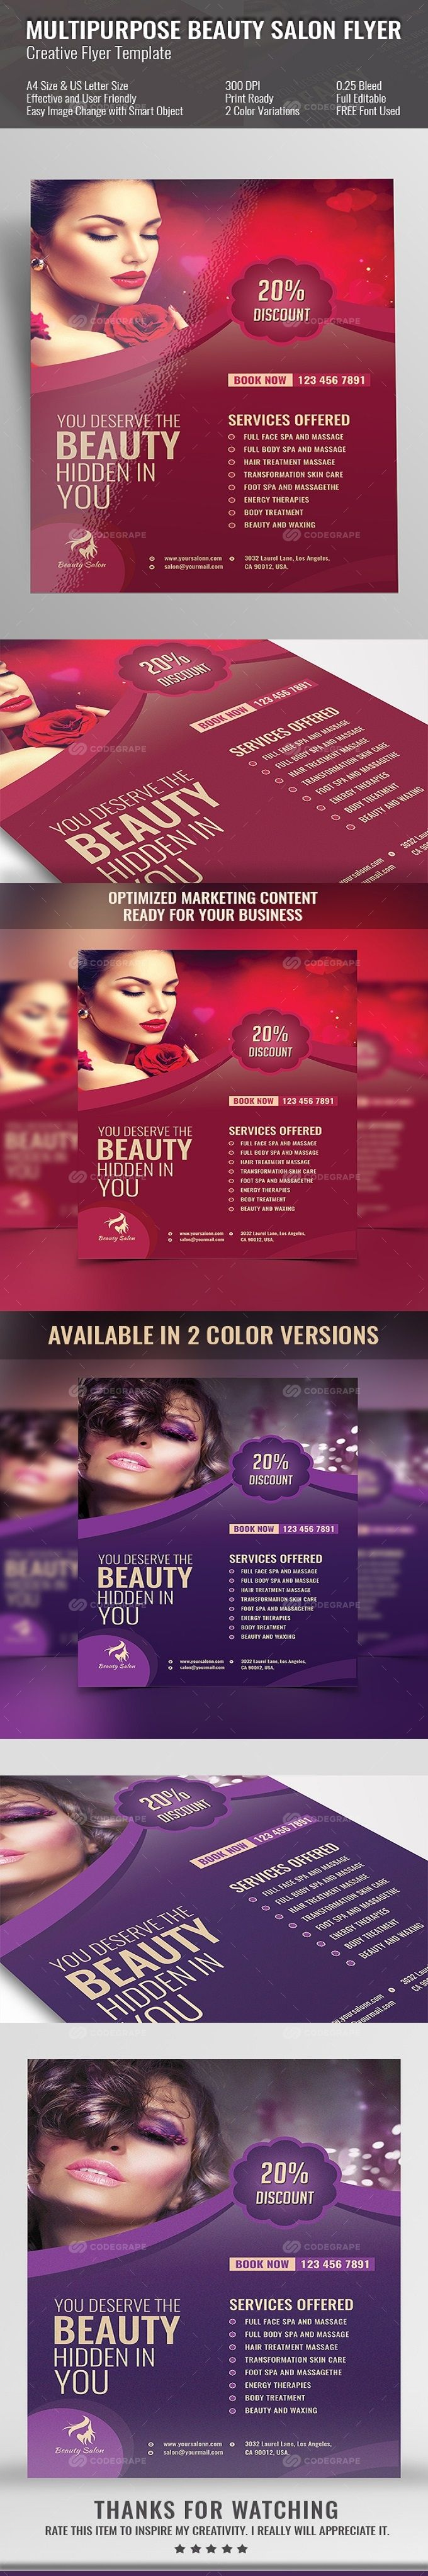 Spa And Beauty Salon Flyer On Codegrape More Info HttpsWww